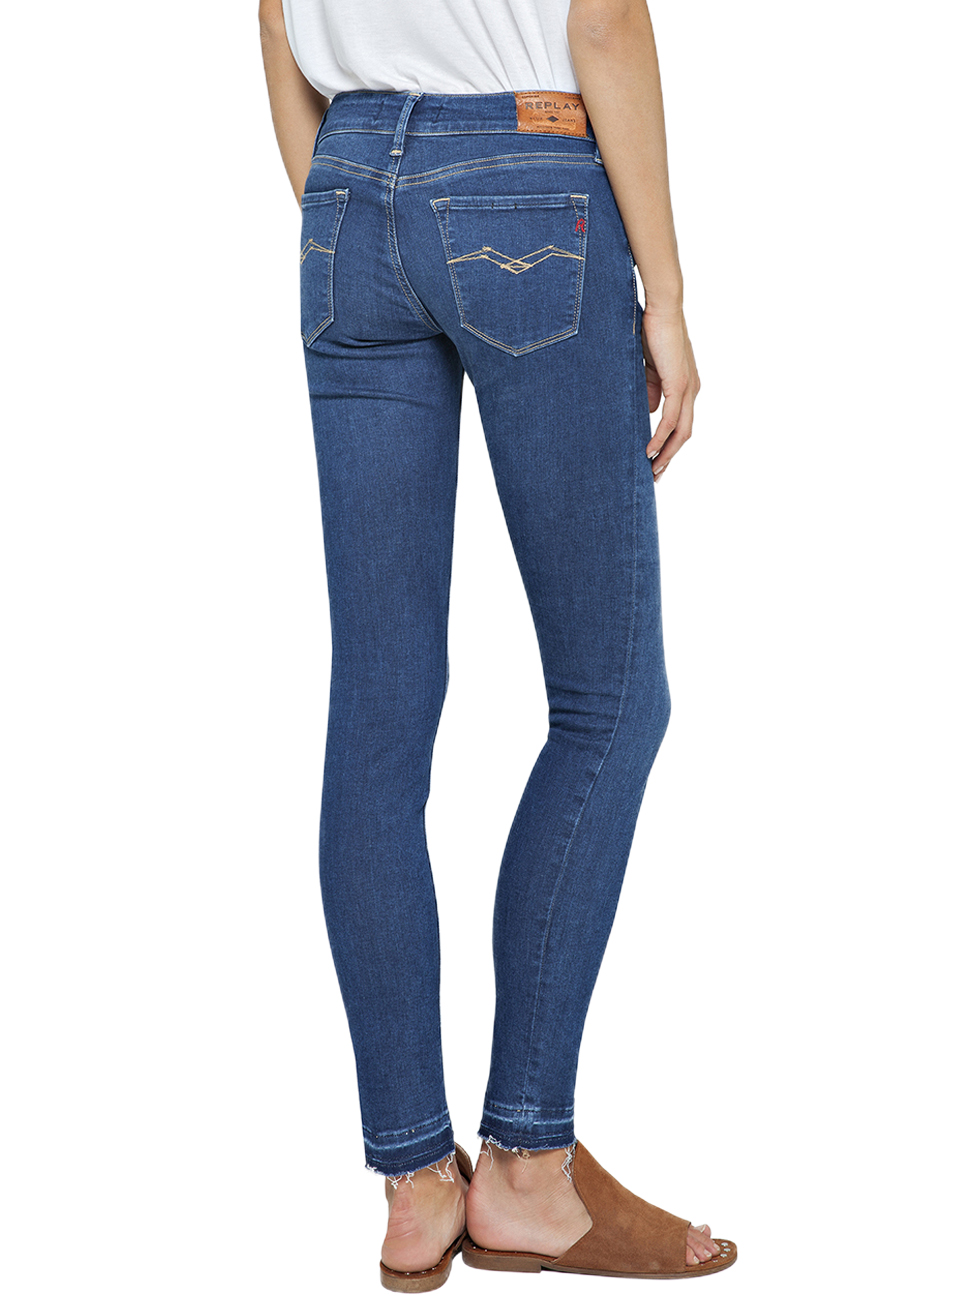 replay-damen-jeans-luz-skinny-fit-blau-dark-blue